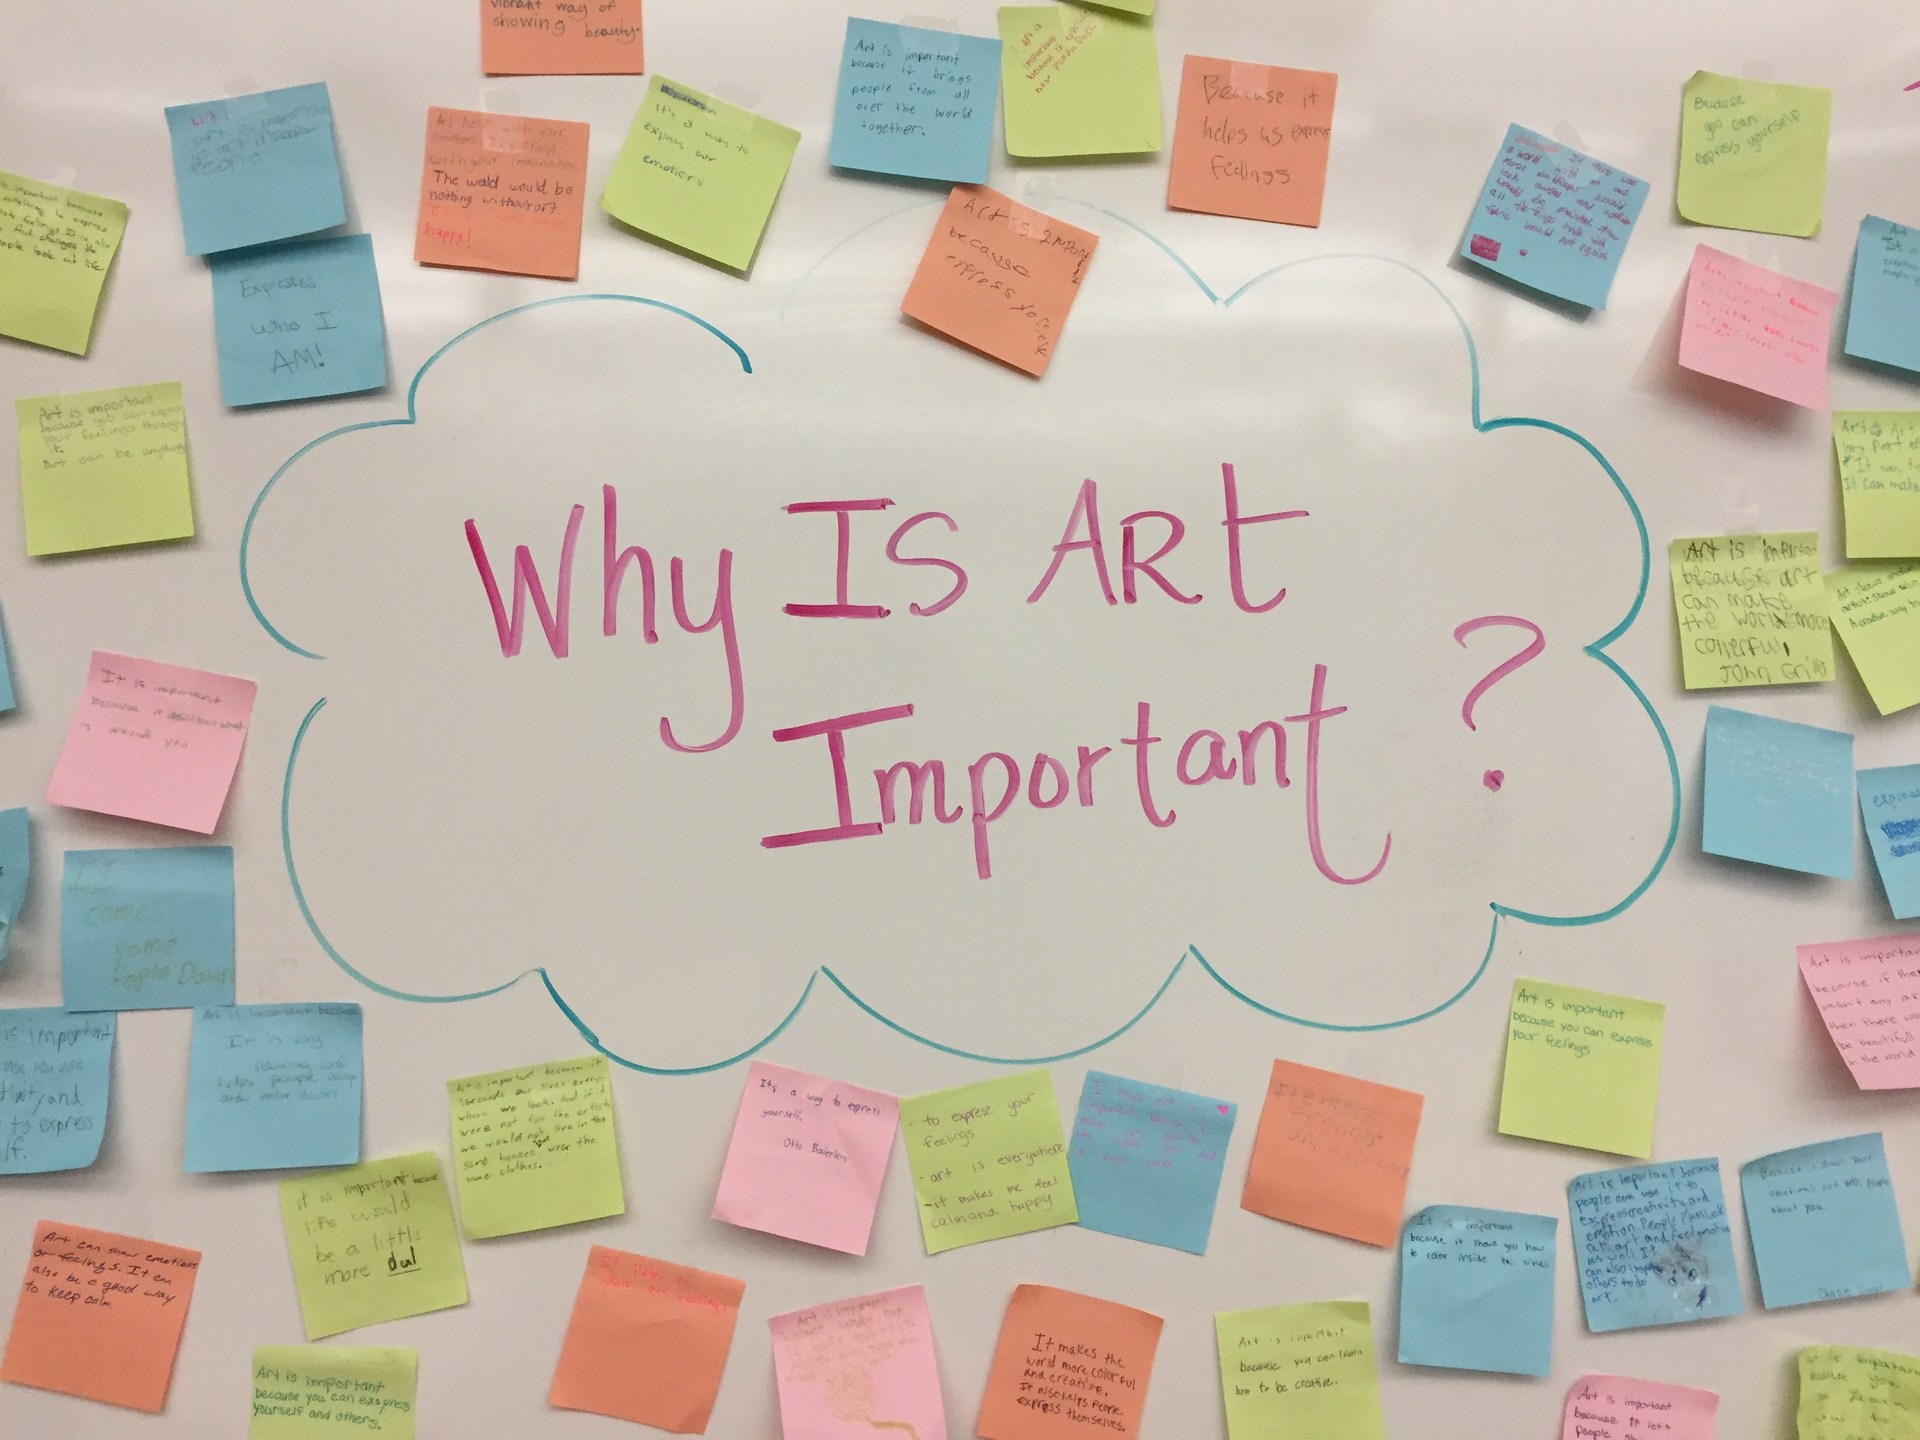 Why is art important to you?